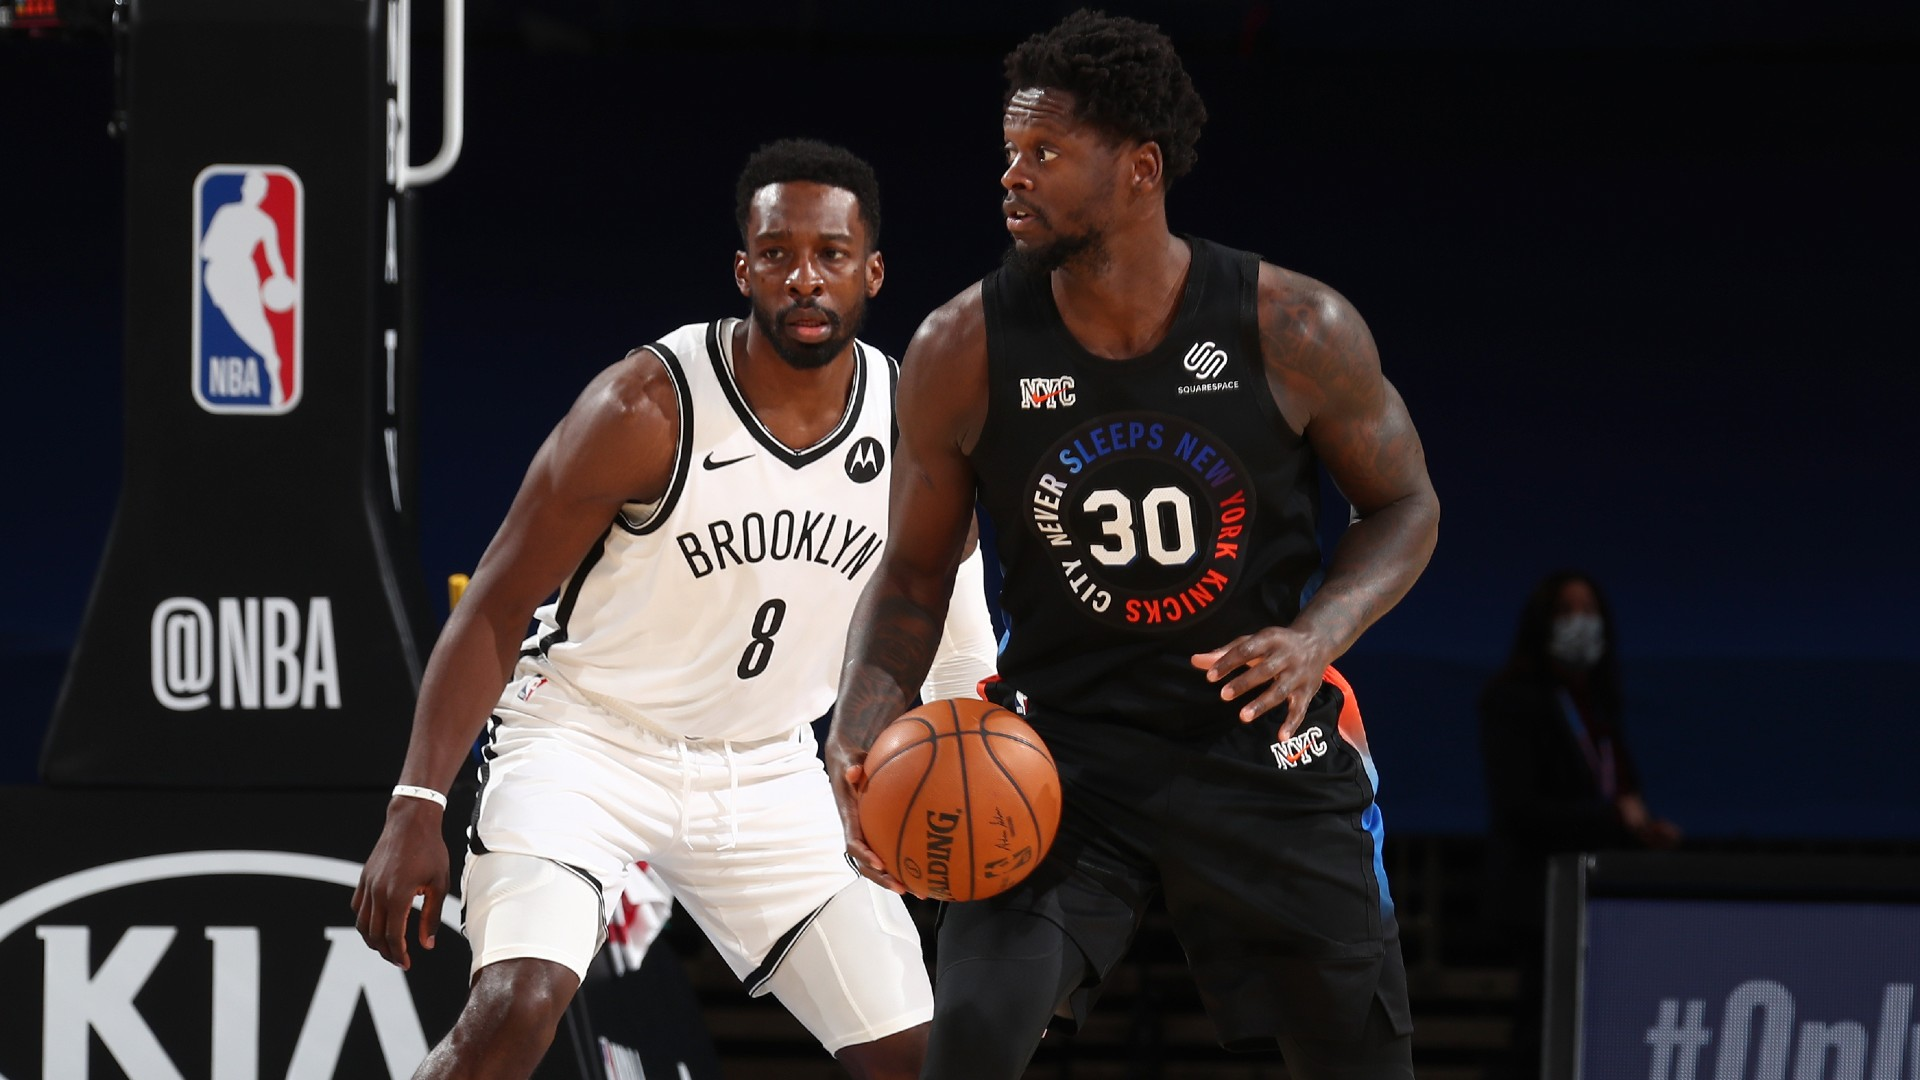 NBA Big Game Focus: New York Knicks aim to bridge the gap to Brooklyn Nets